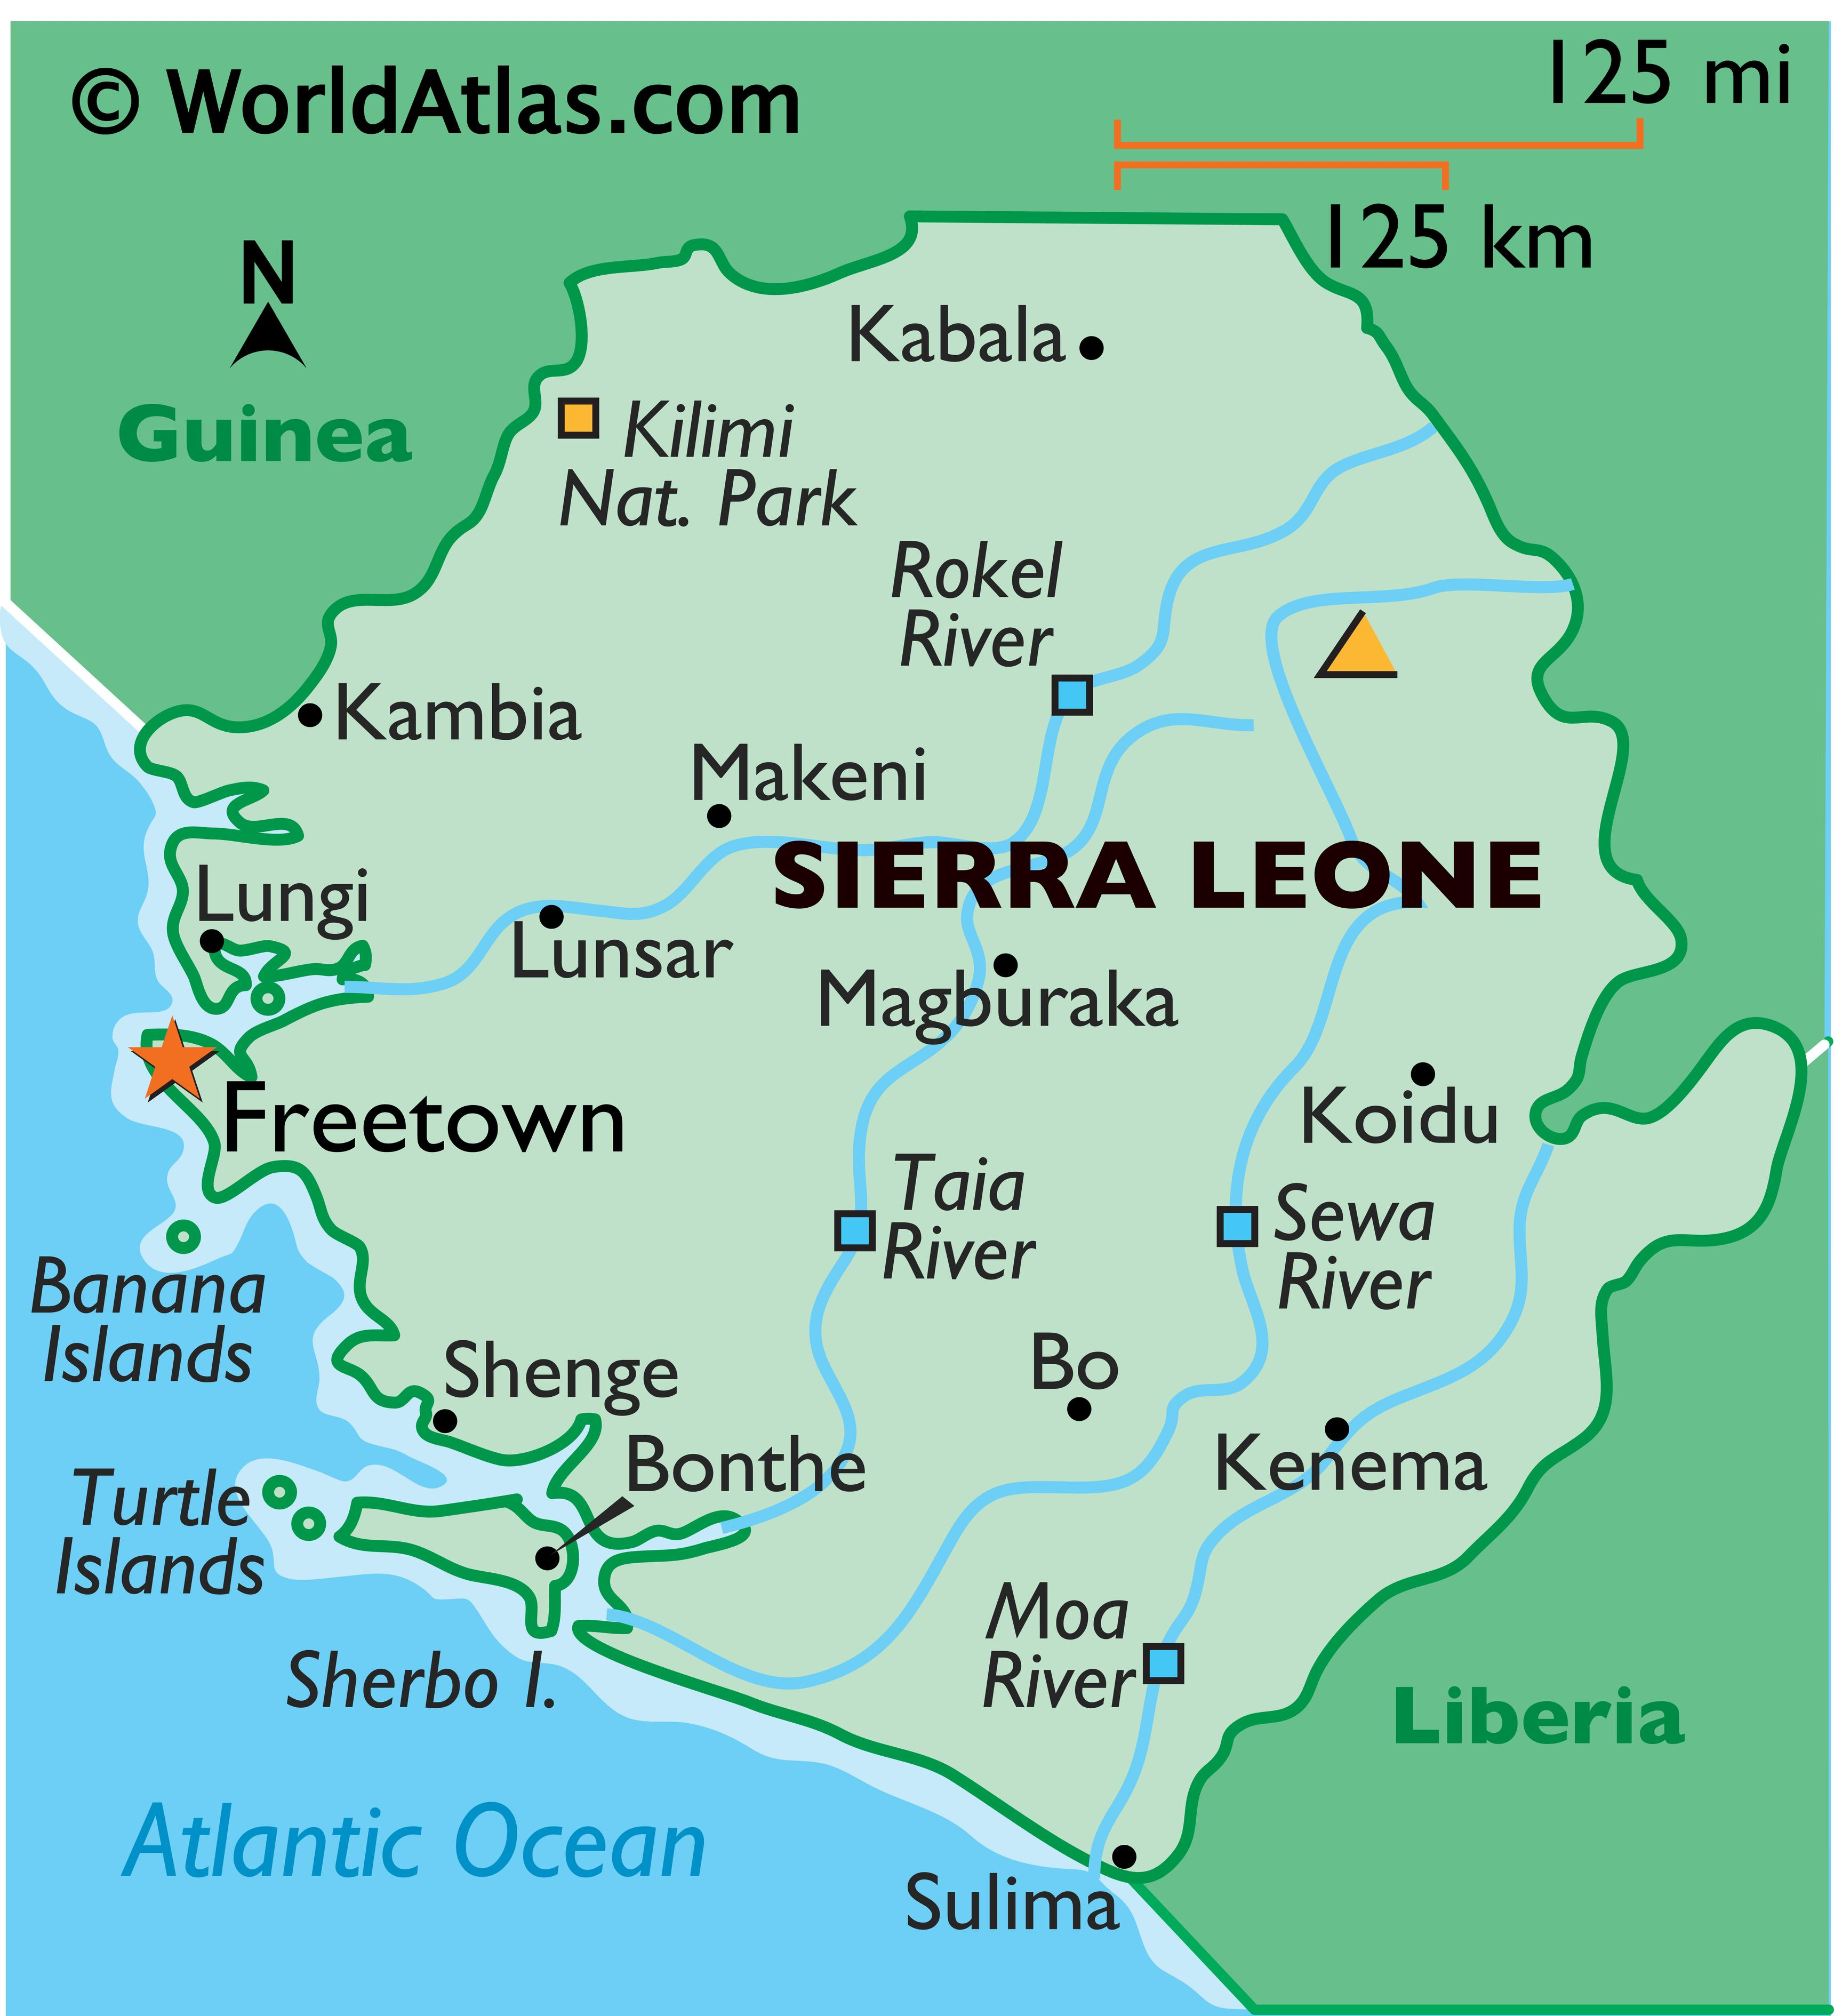 Phyiscal Map of Sierra Leone with state boundaries. It shows the physical features of Sierra Leone including relief, rivers, islands, highest point, and major cities.